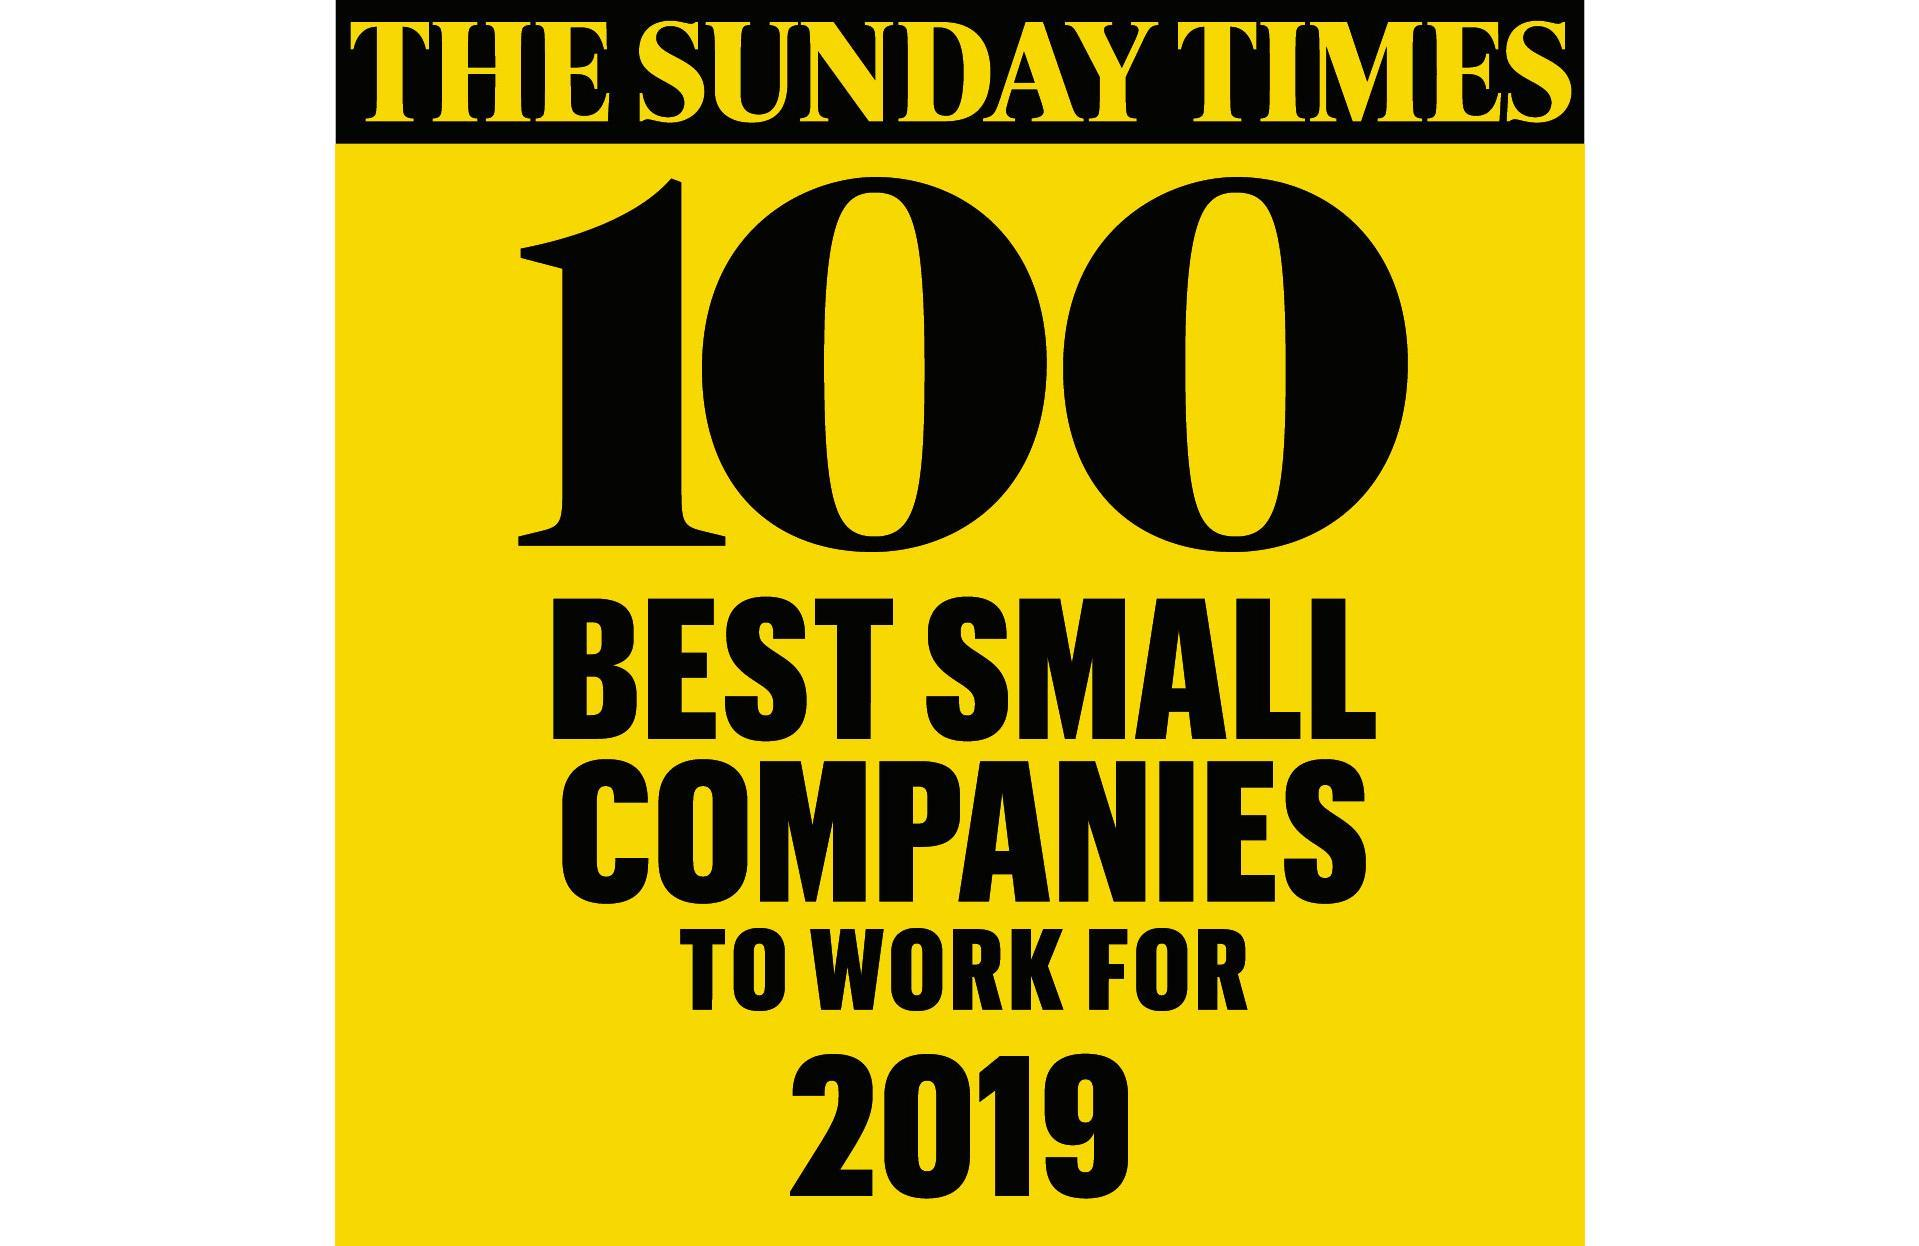 Sunday Times 100 Best Small Companies to Work For 2019 Logo